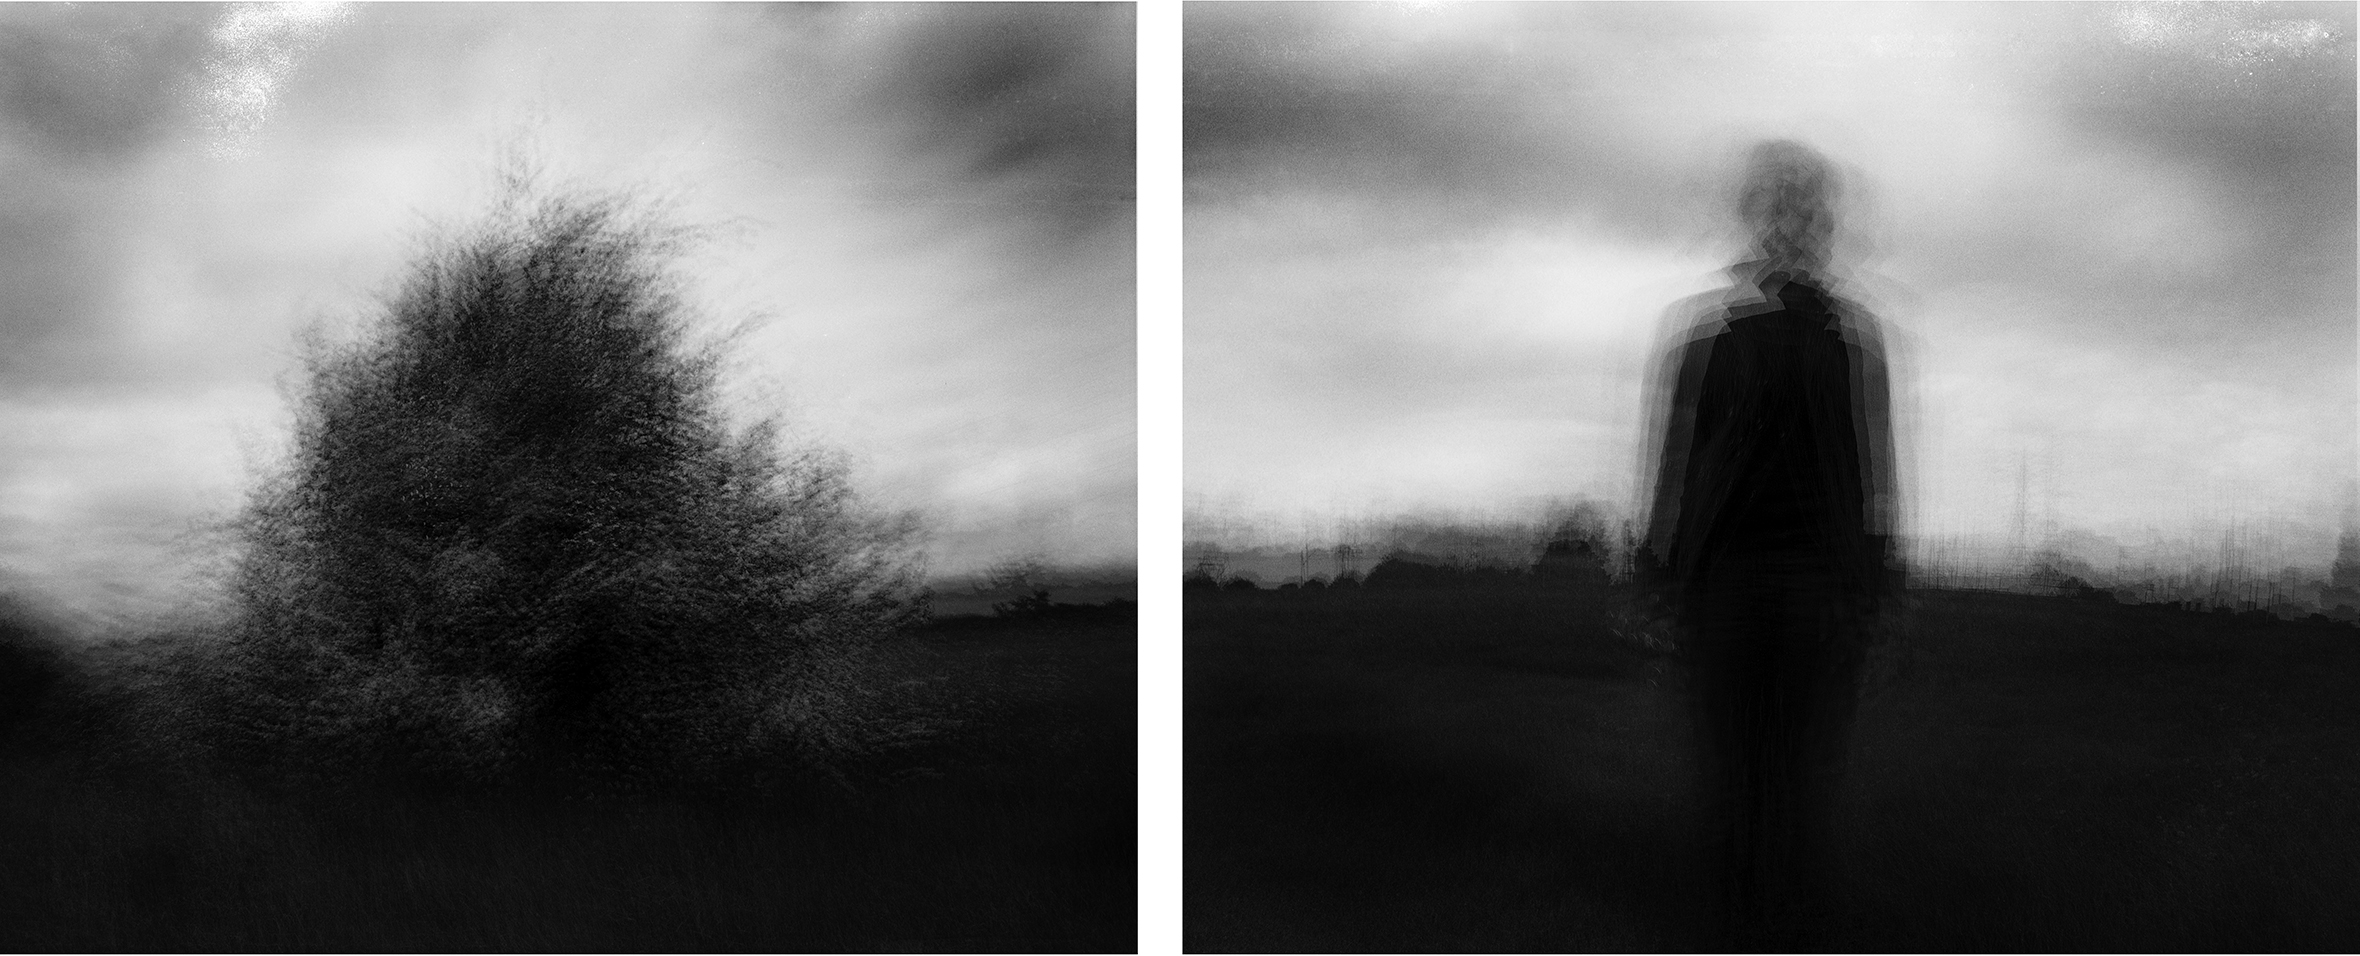 A set of blurred photos. The left photo displays a blurred bush. The right photo appears to continue from the left and displays a blurred silhouette of a person walking off.